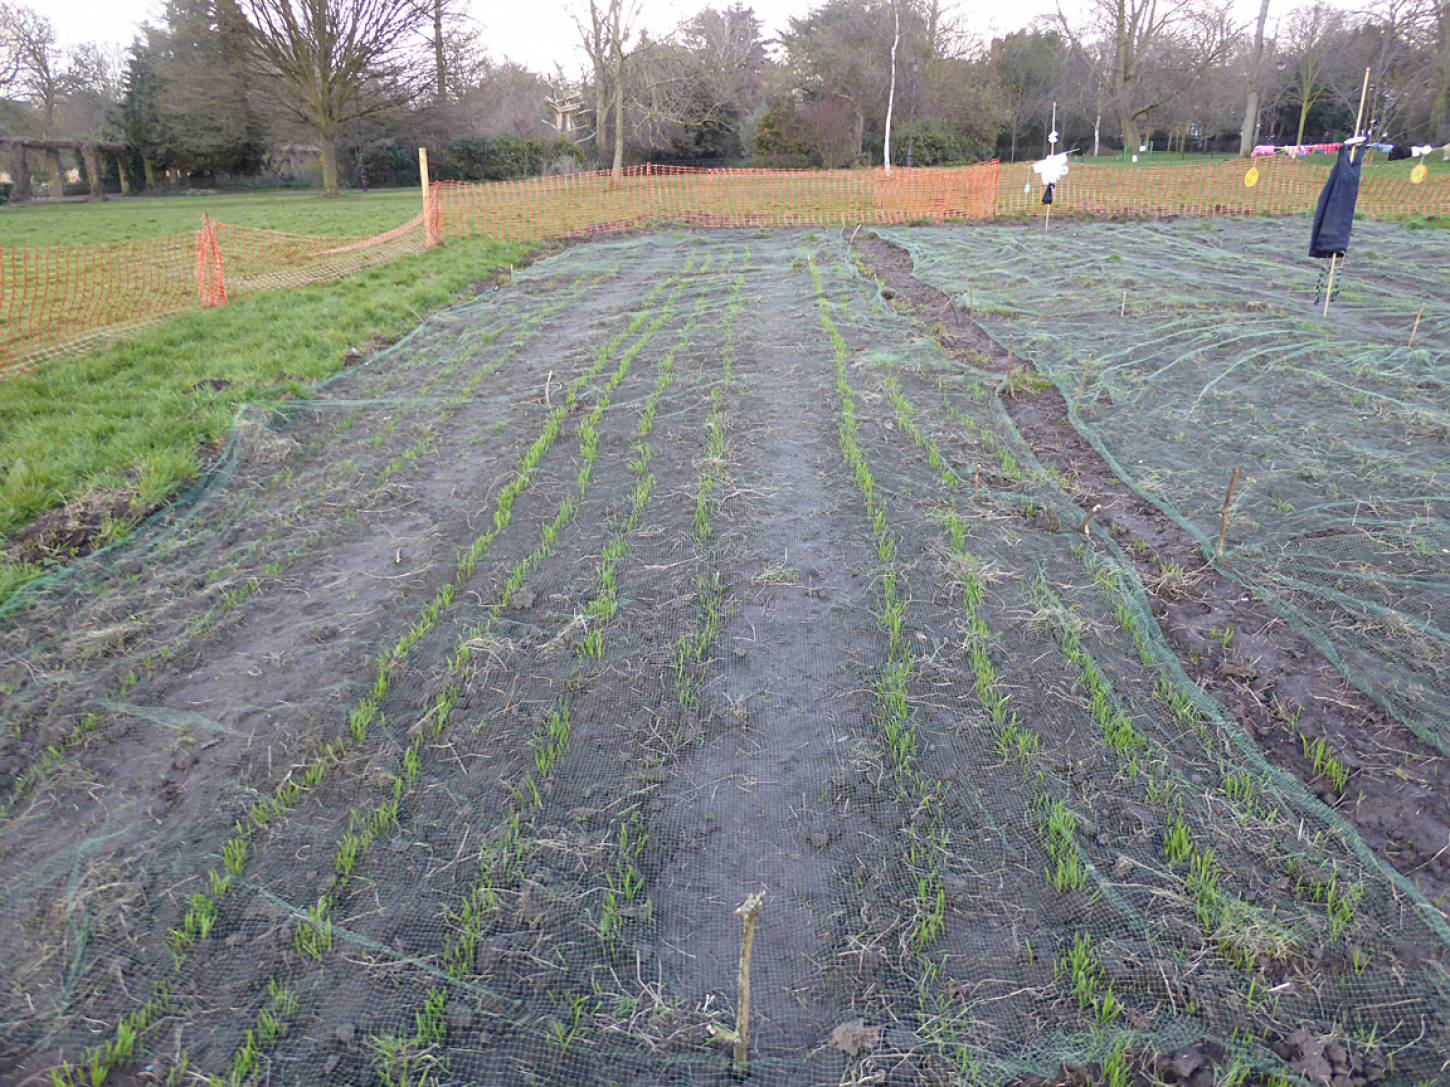 winter wheat up nicely with lovely scarey scare crows from local school - 5:32pm&nbsp;16<sup>th</sup>&nbsp;Mar.&nbsp;'18  <a href='http://maps.google.com/?t=h&q=51.465475,-0.092353&z=18&output=embed' target=_blank><img src='http://www.brockwell-bake.org.uk/img/marker.png' style='border:none;vertical-align:top' height=16px></a>